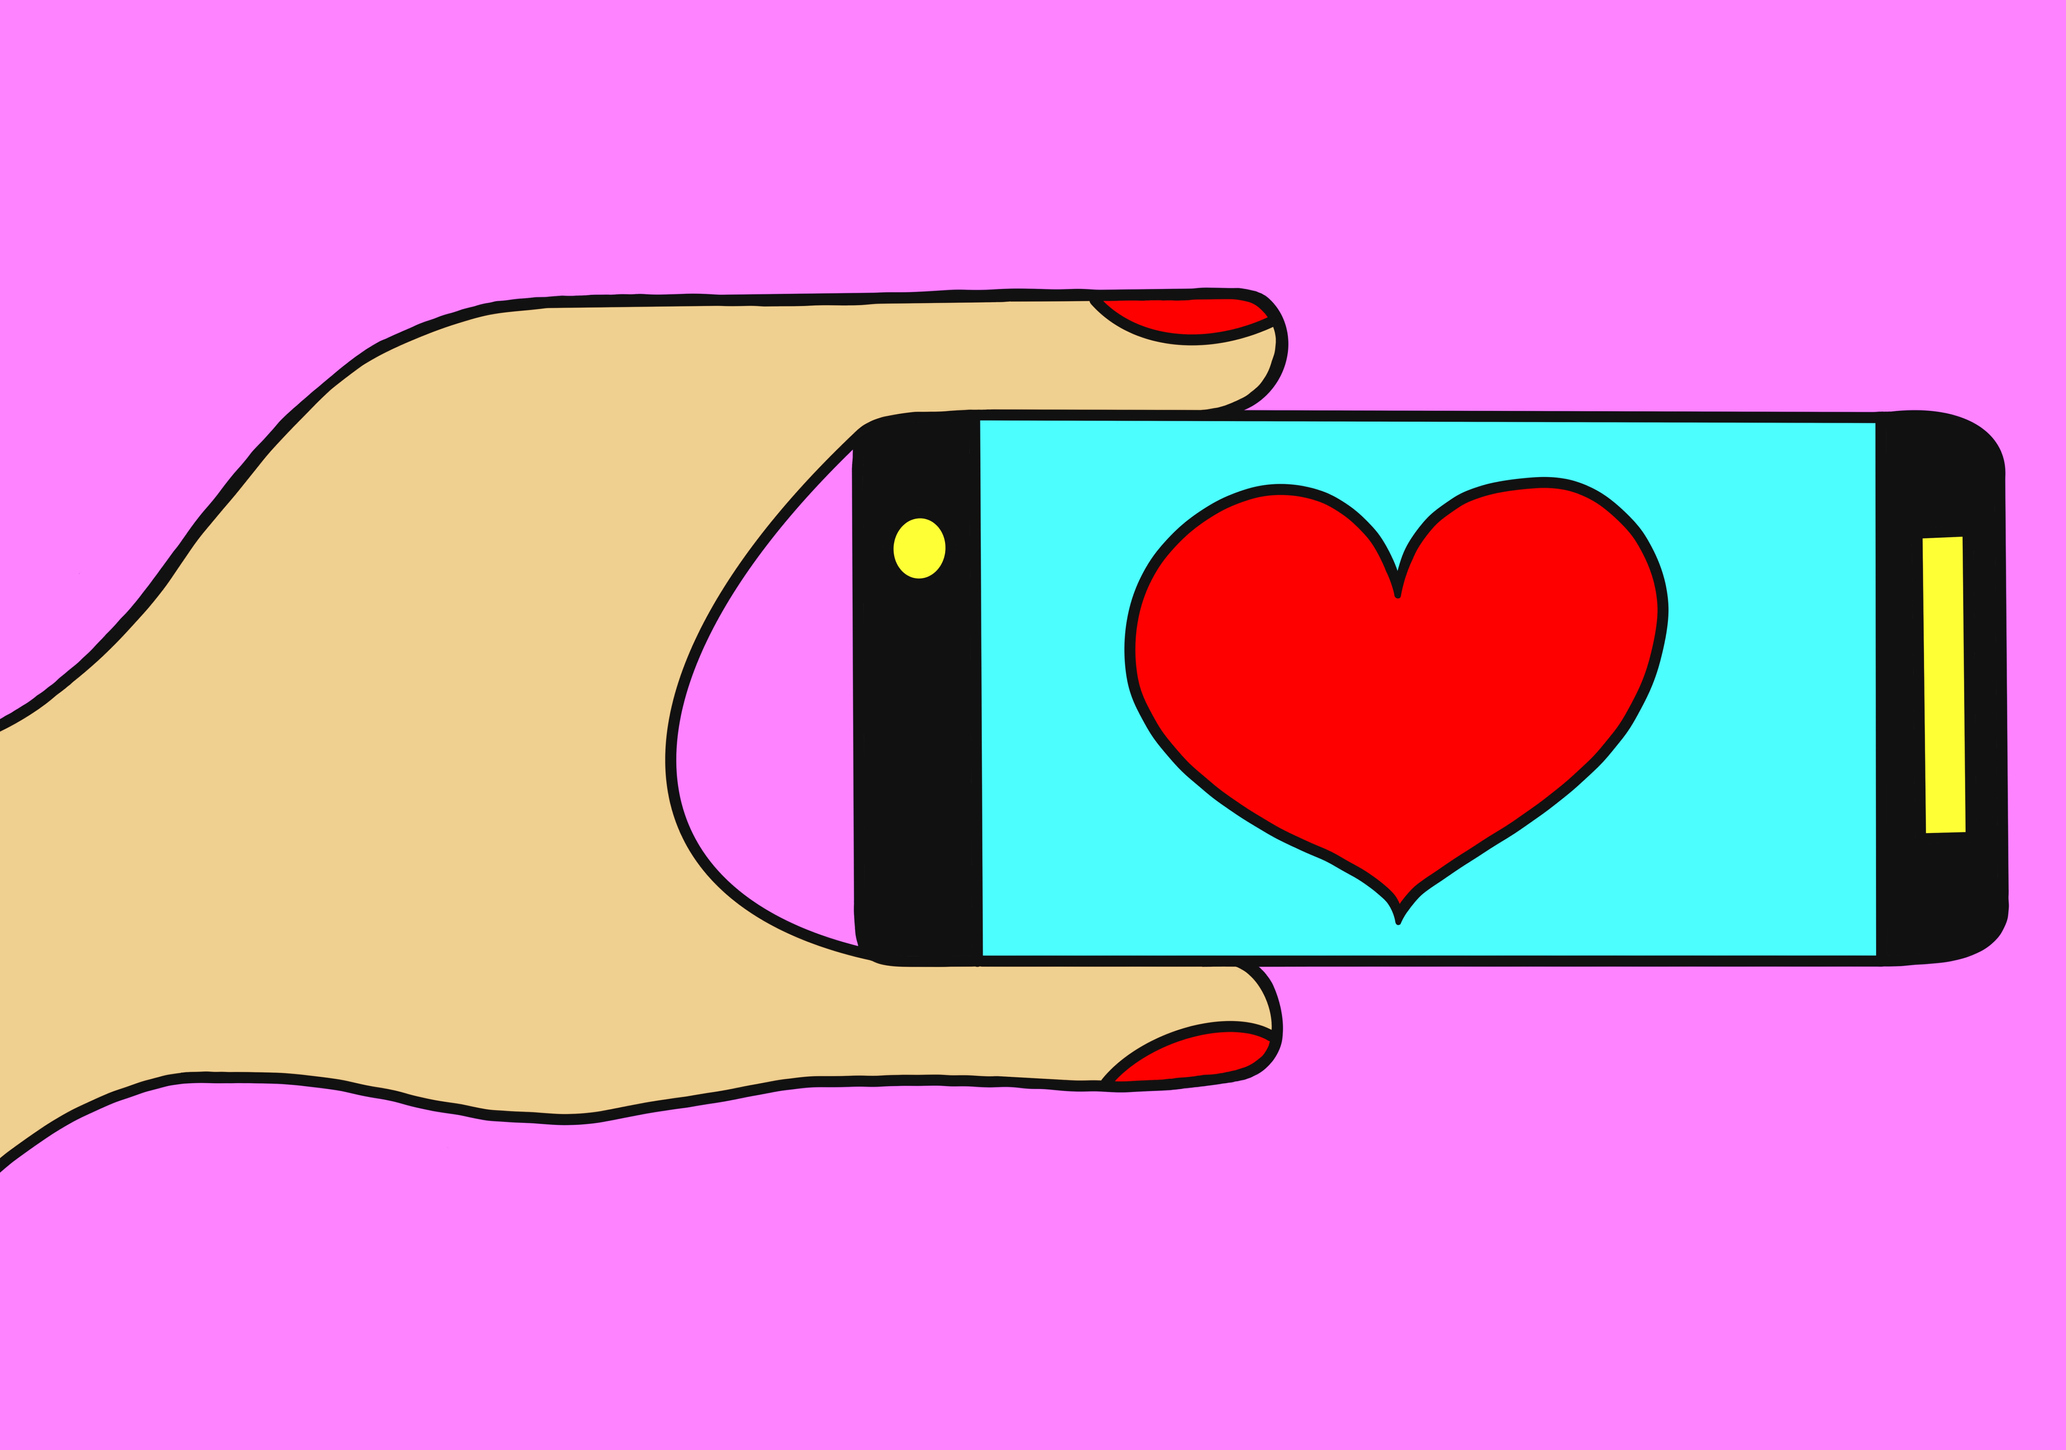 Hand holding phone with heart